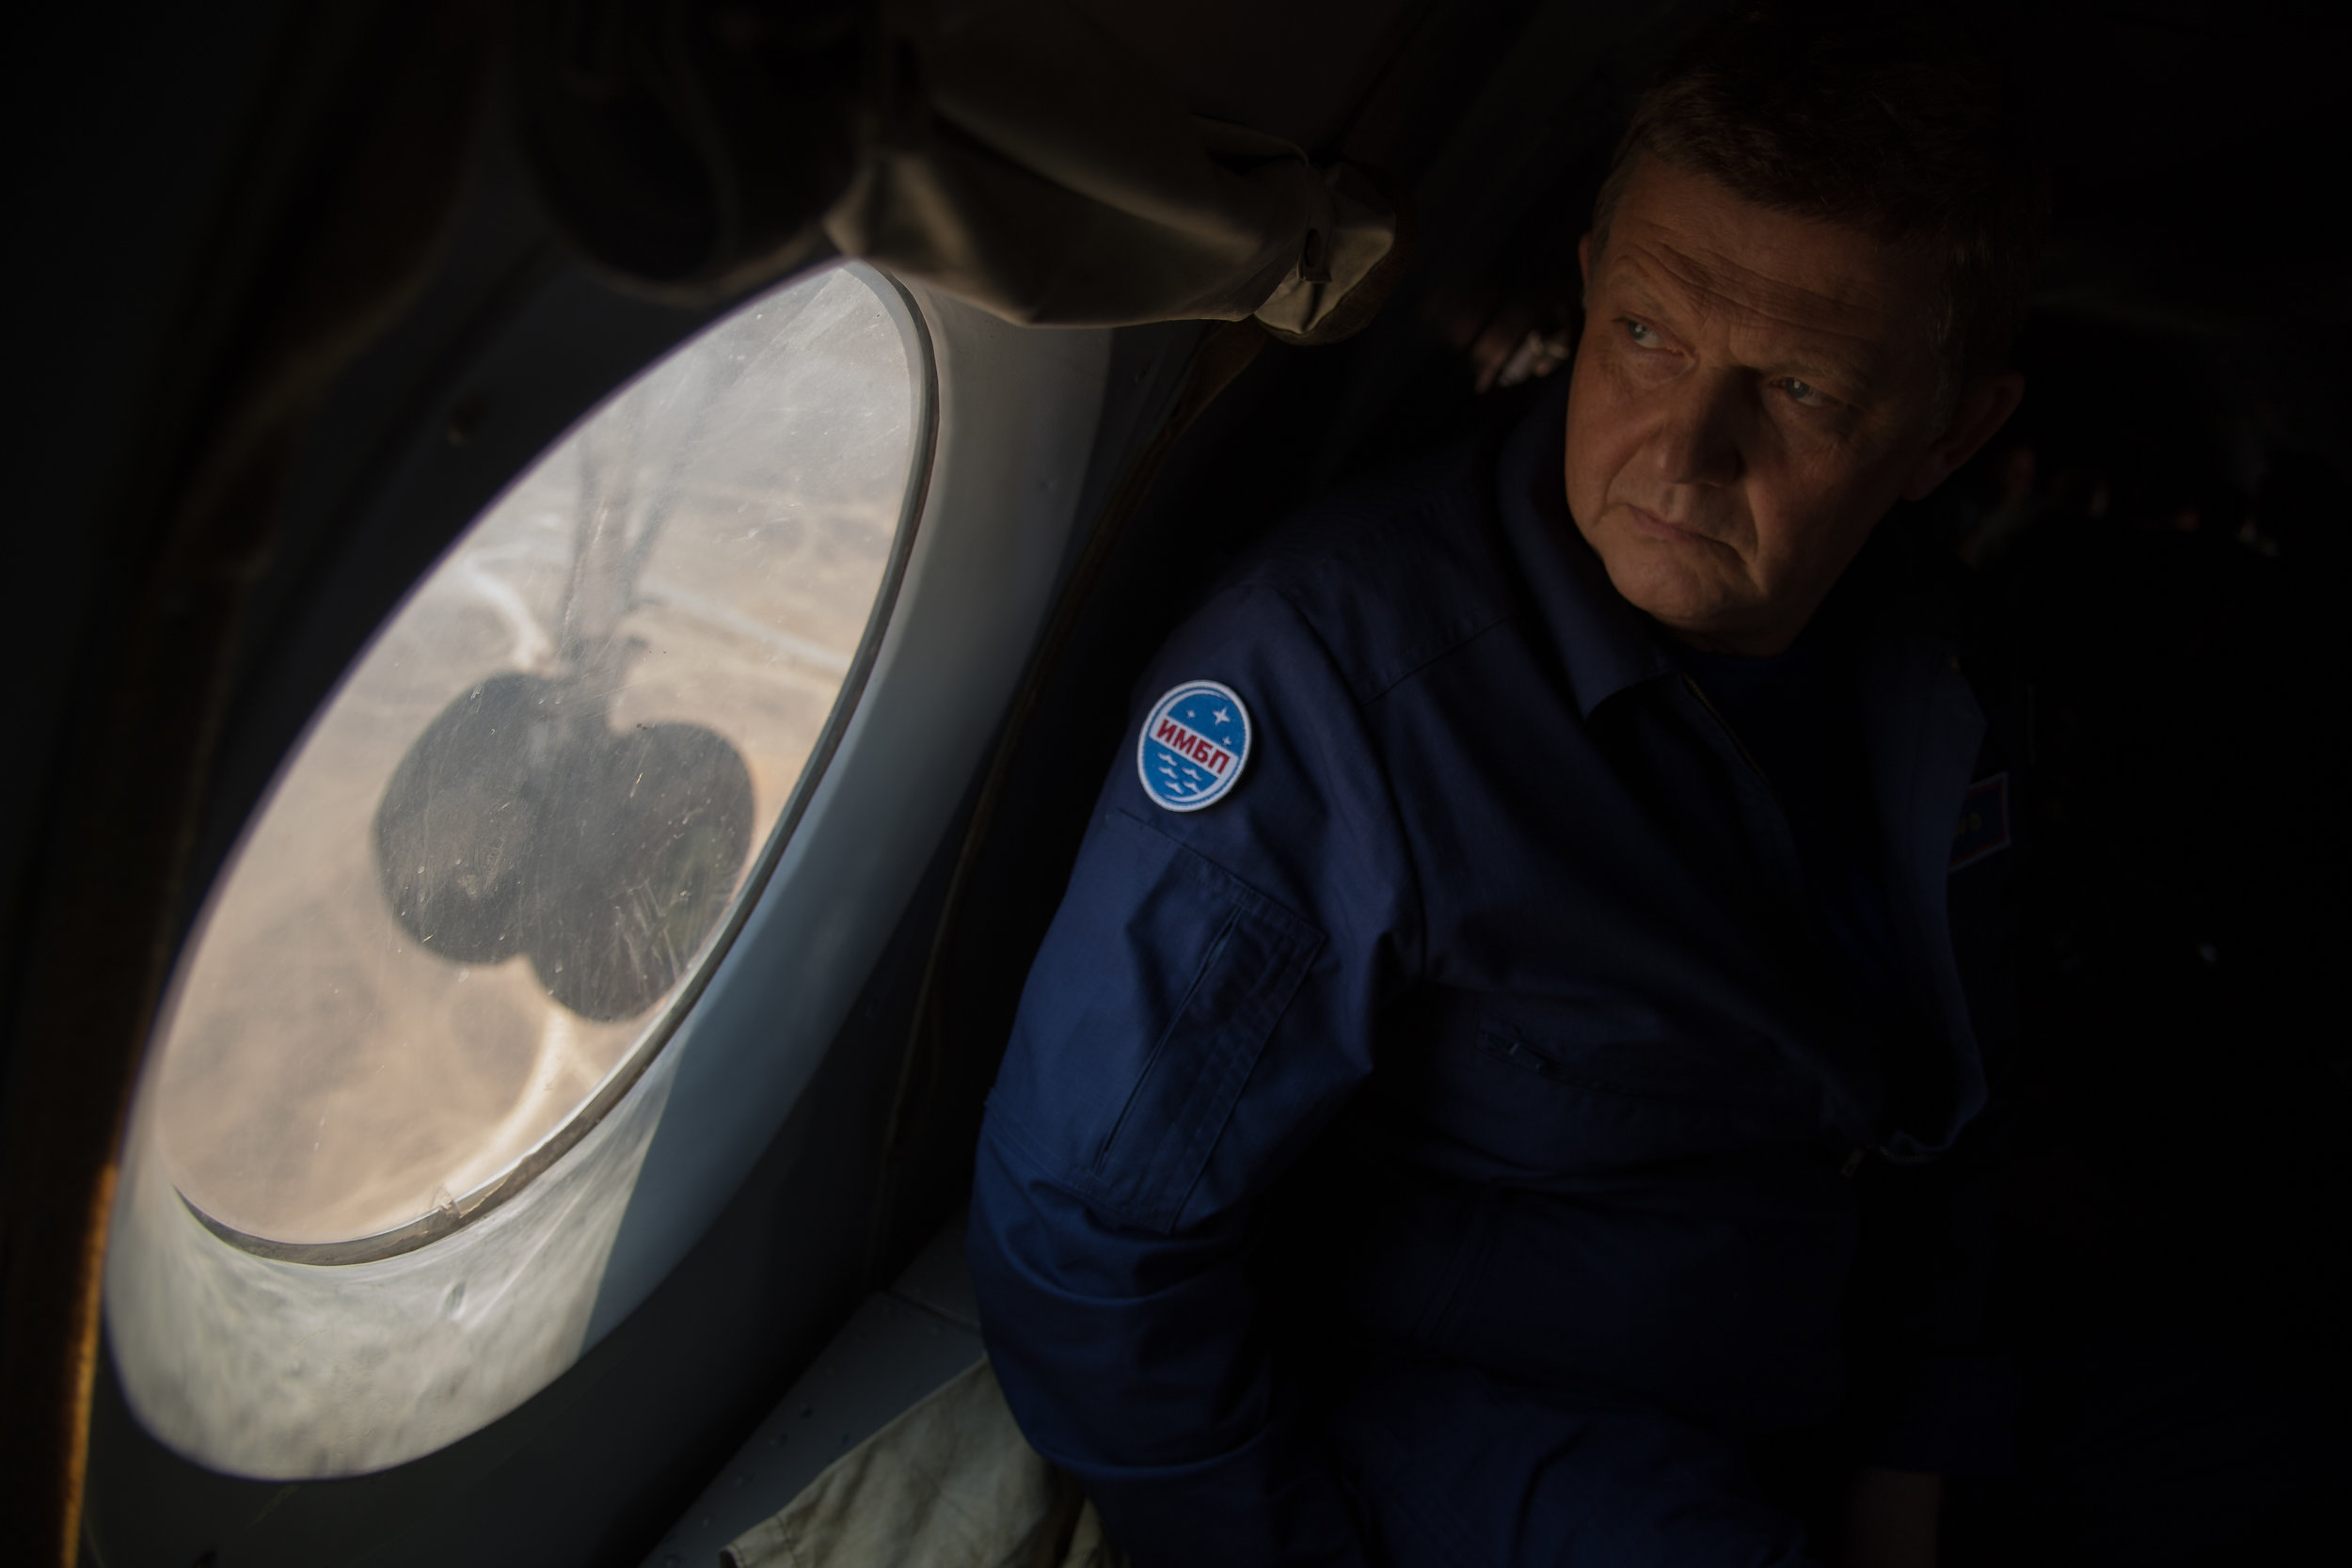 Director of the Russian Institute for Biomedical Problems (IMBP) Oleg Orlov looks out the window of an AN-26 aircraft as support teams pre-position to Zhezkazgan, Kazakhstan. Photo and Caption Credit: Bill Ingalls / NASA